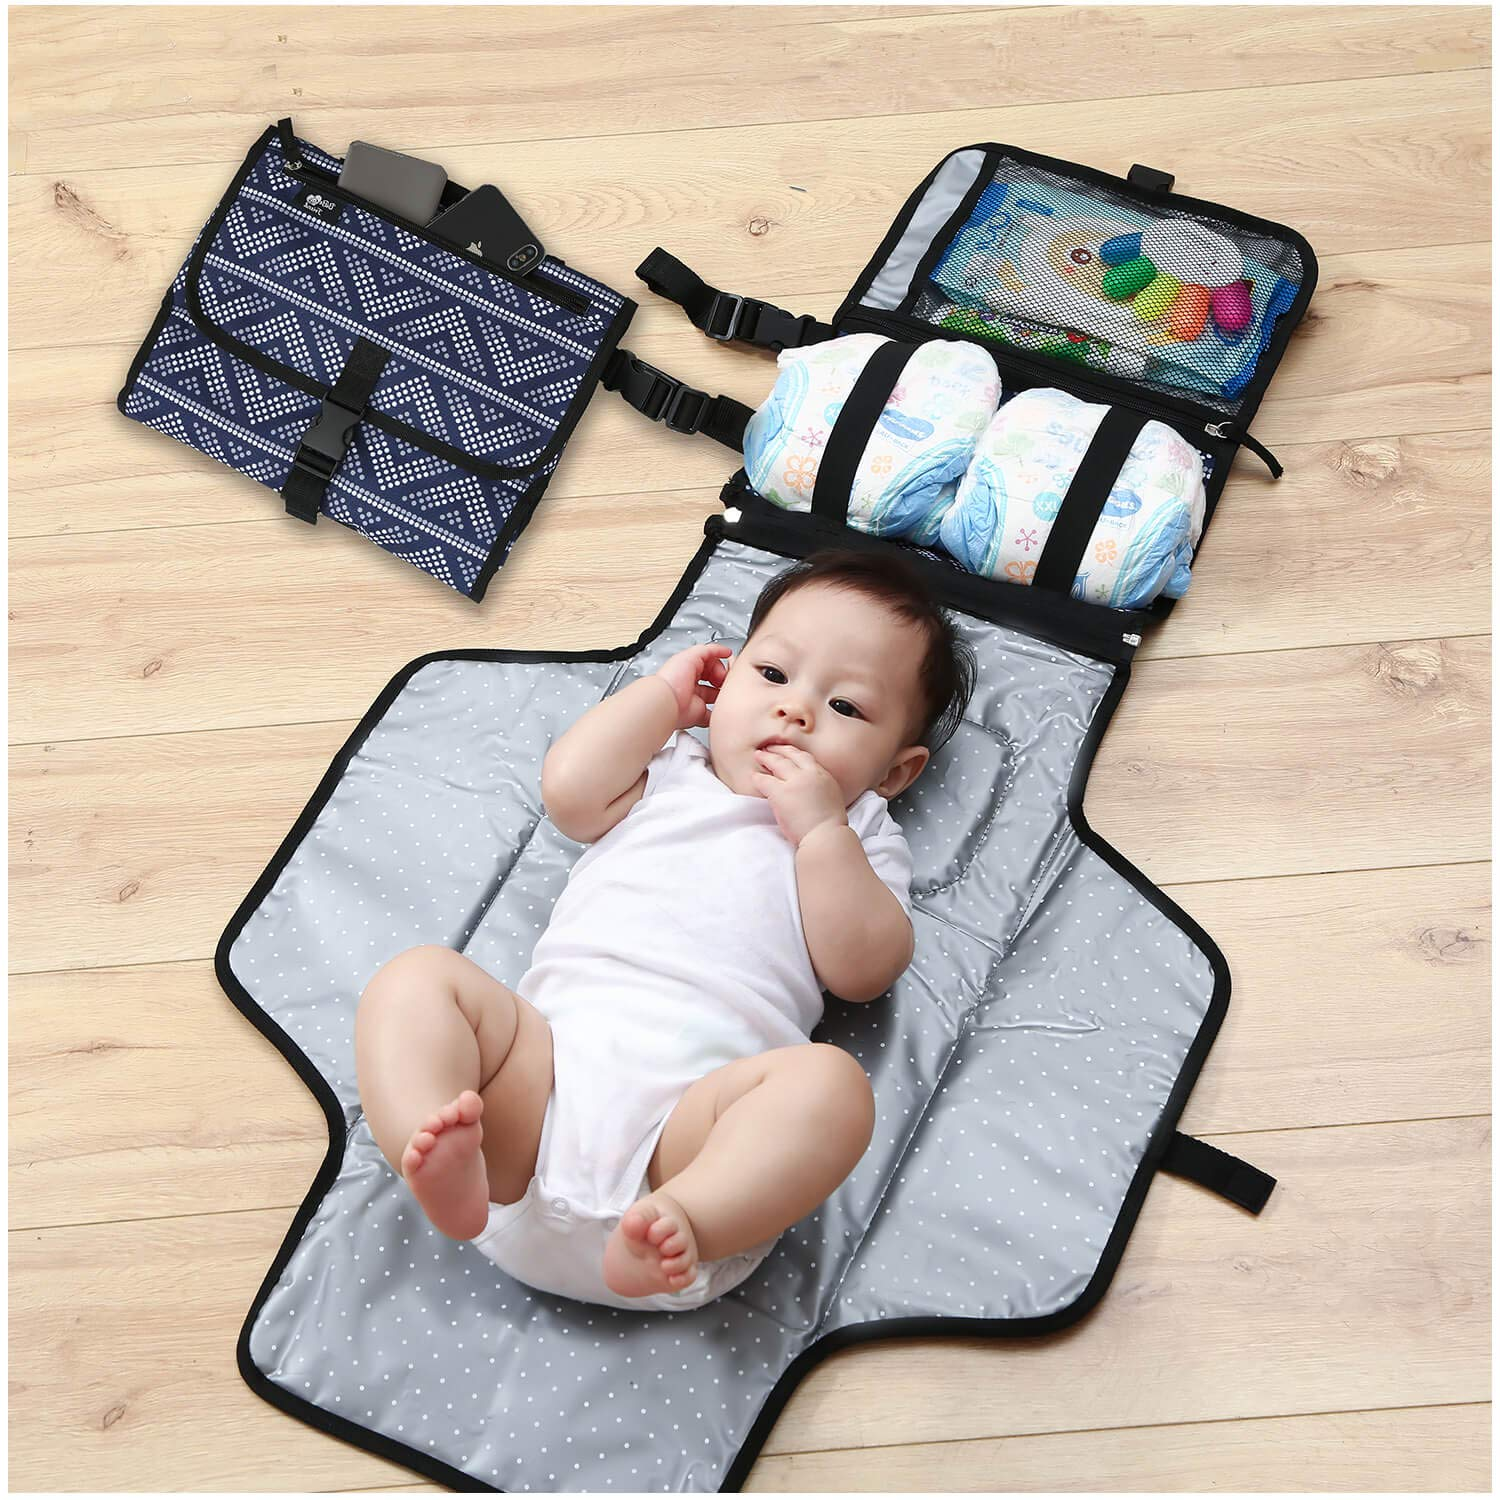 Baby Portable Changing Pad - Changing Pad Portable- Diaper Clutch - Lightweight Travel Station Kit for Baby Diapering - Detachable and Wipeable Mat and Soft Head Pillow - Perfect Baby Shower Gift by BeBe Friend